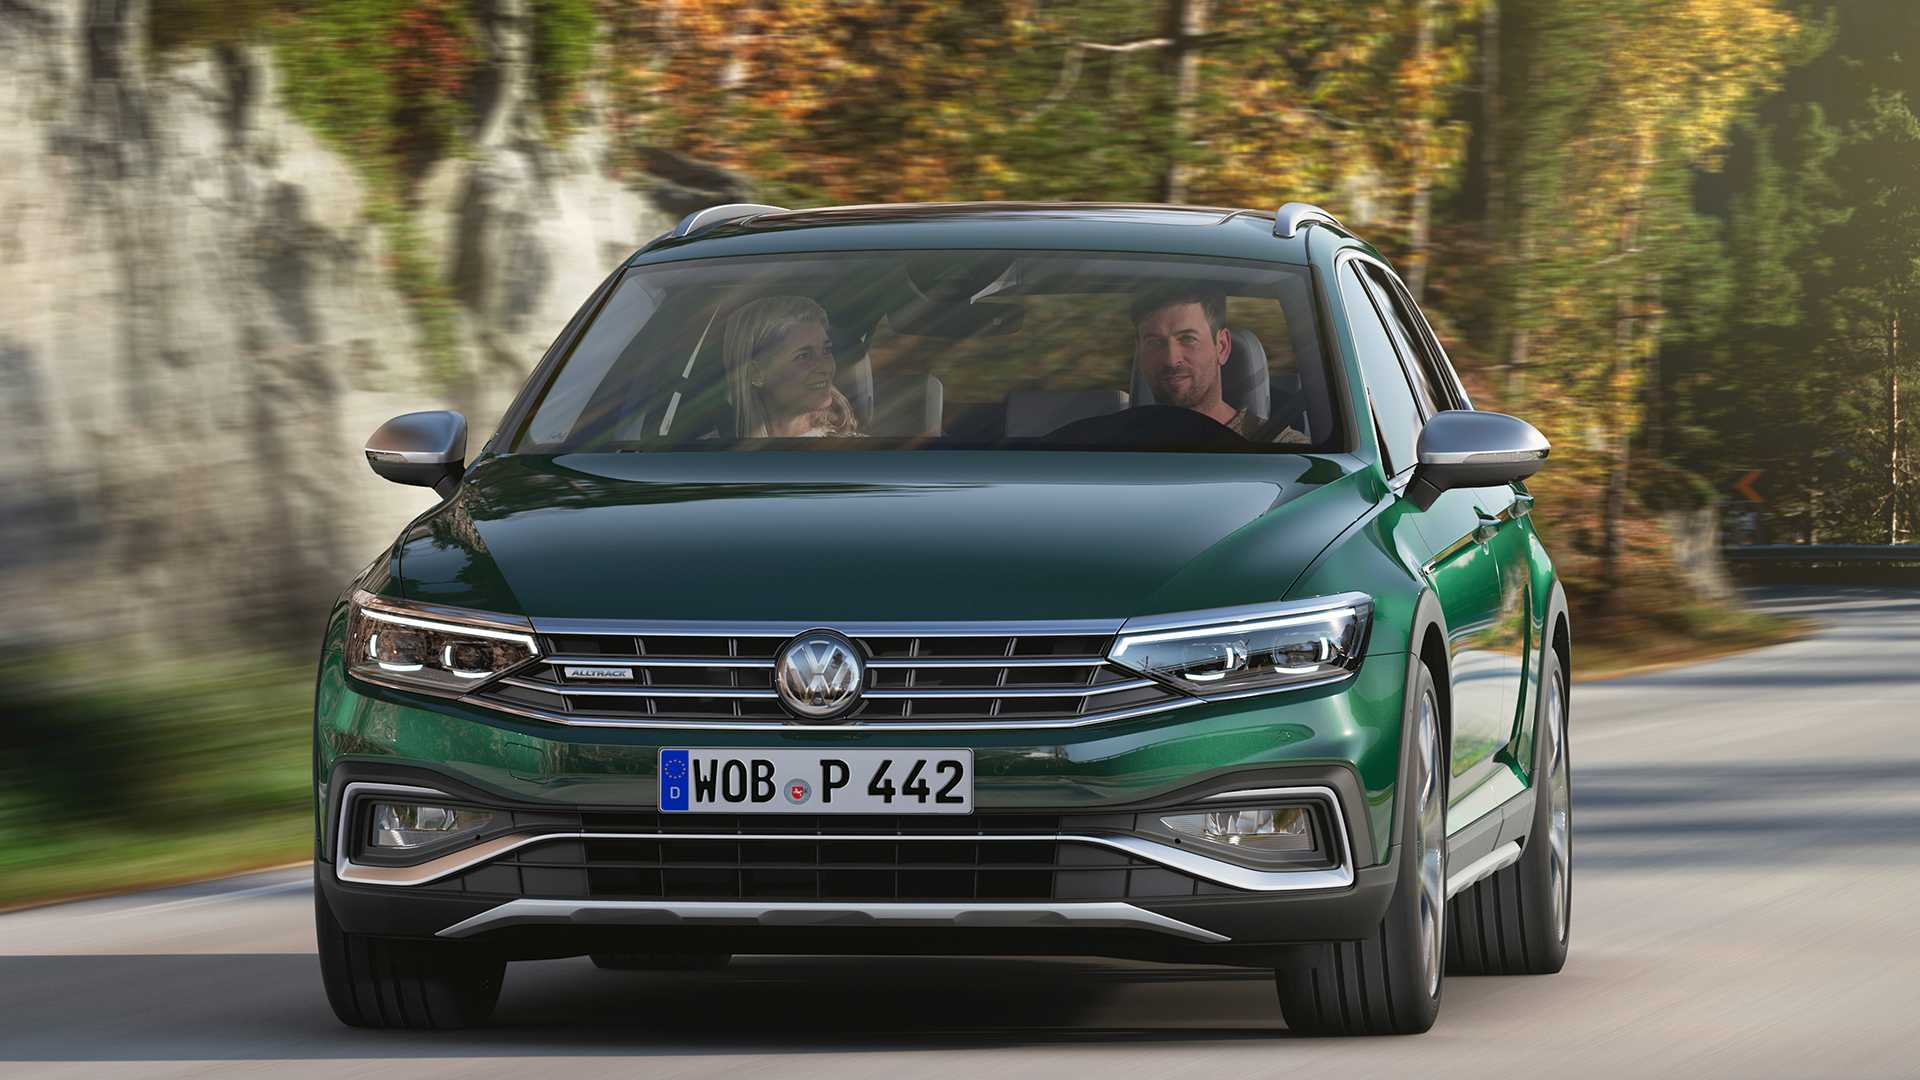 vw-passat-facelift-2019 (14)